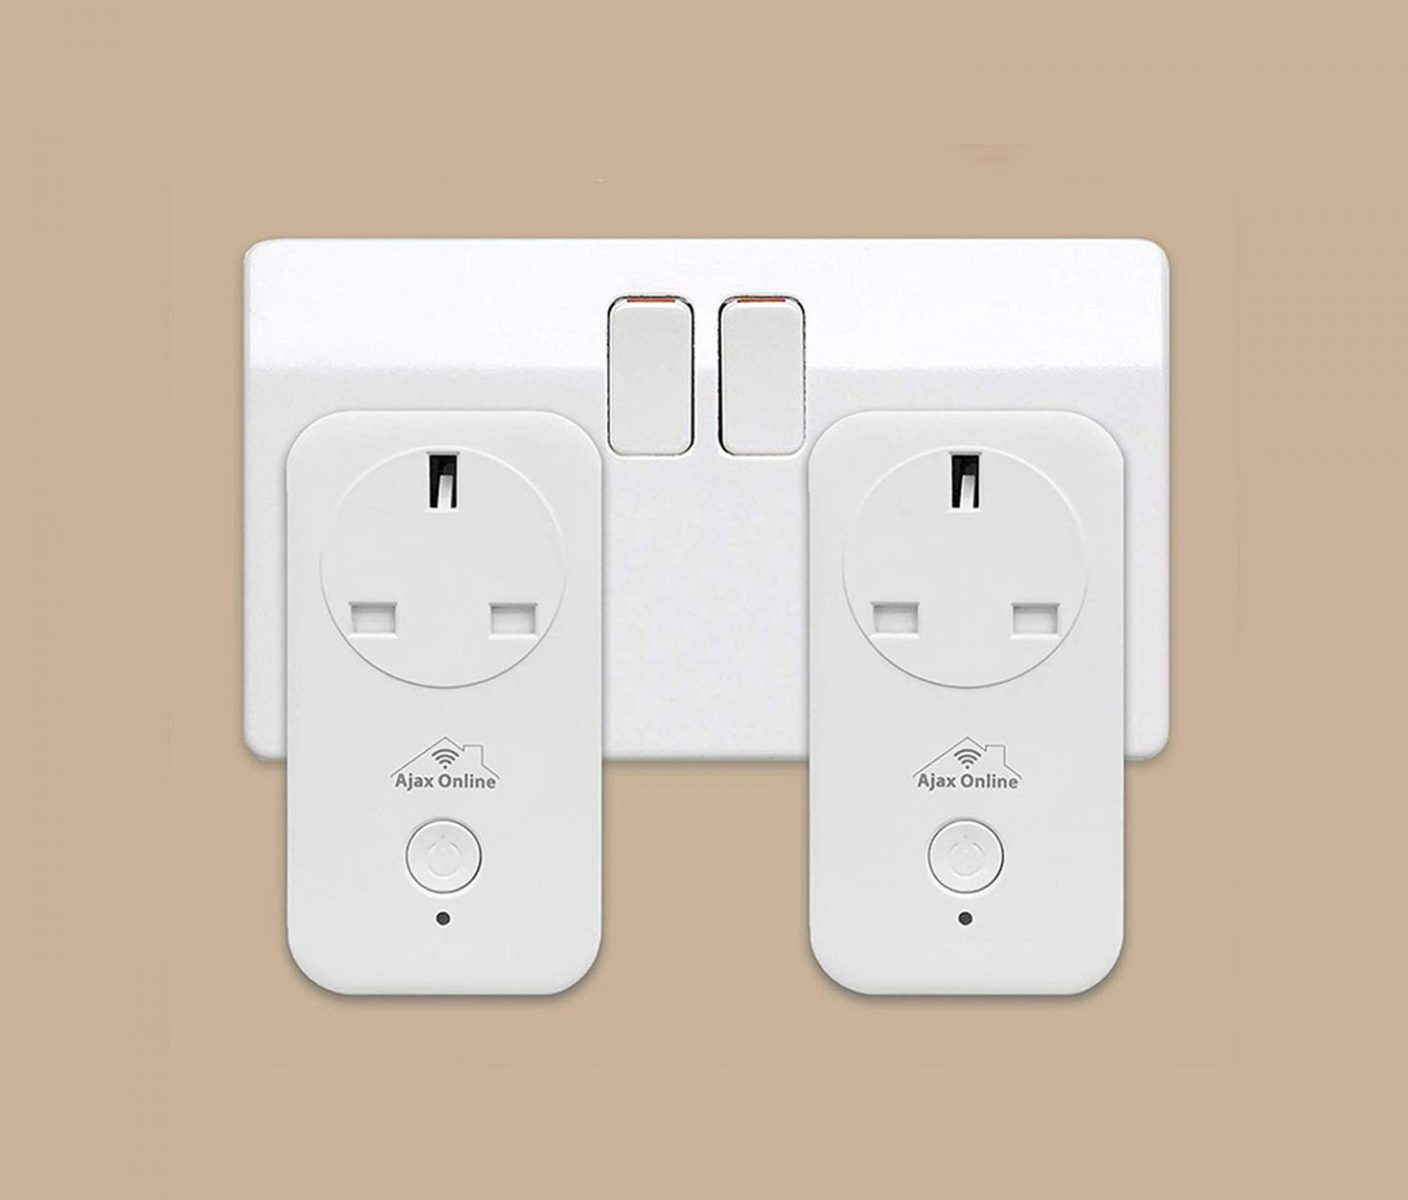 2 White Smart plugs plugged into wall socket